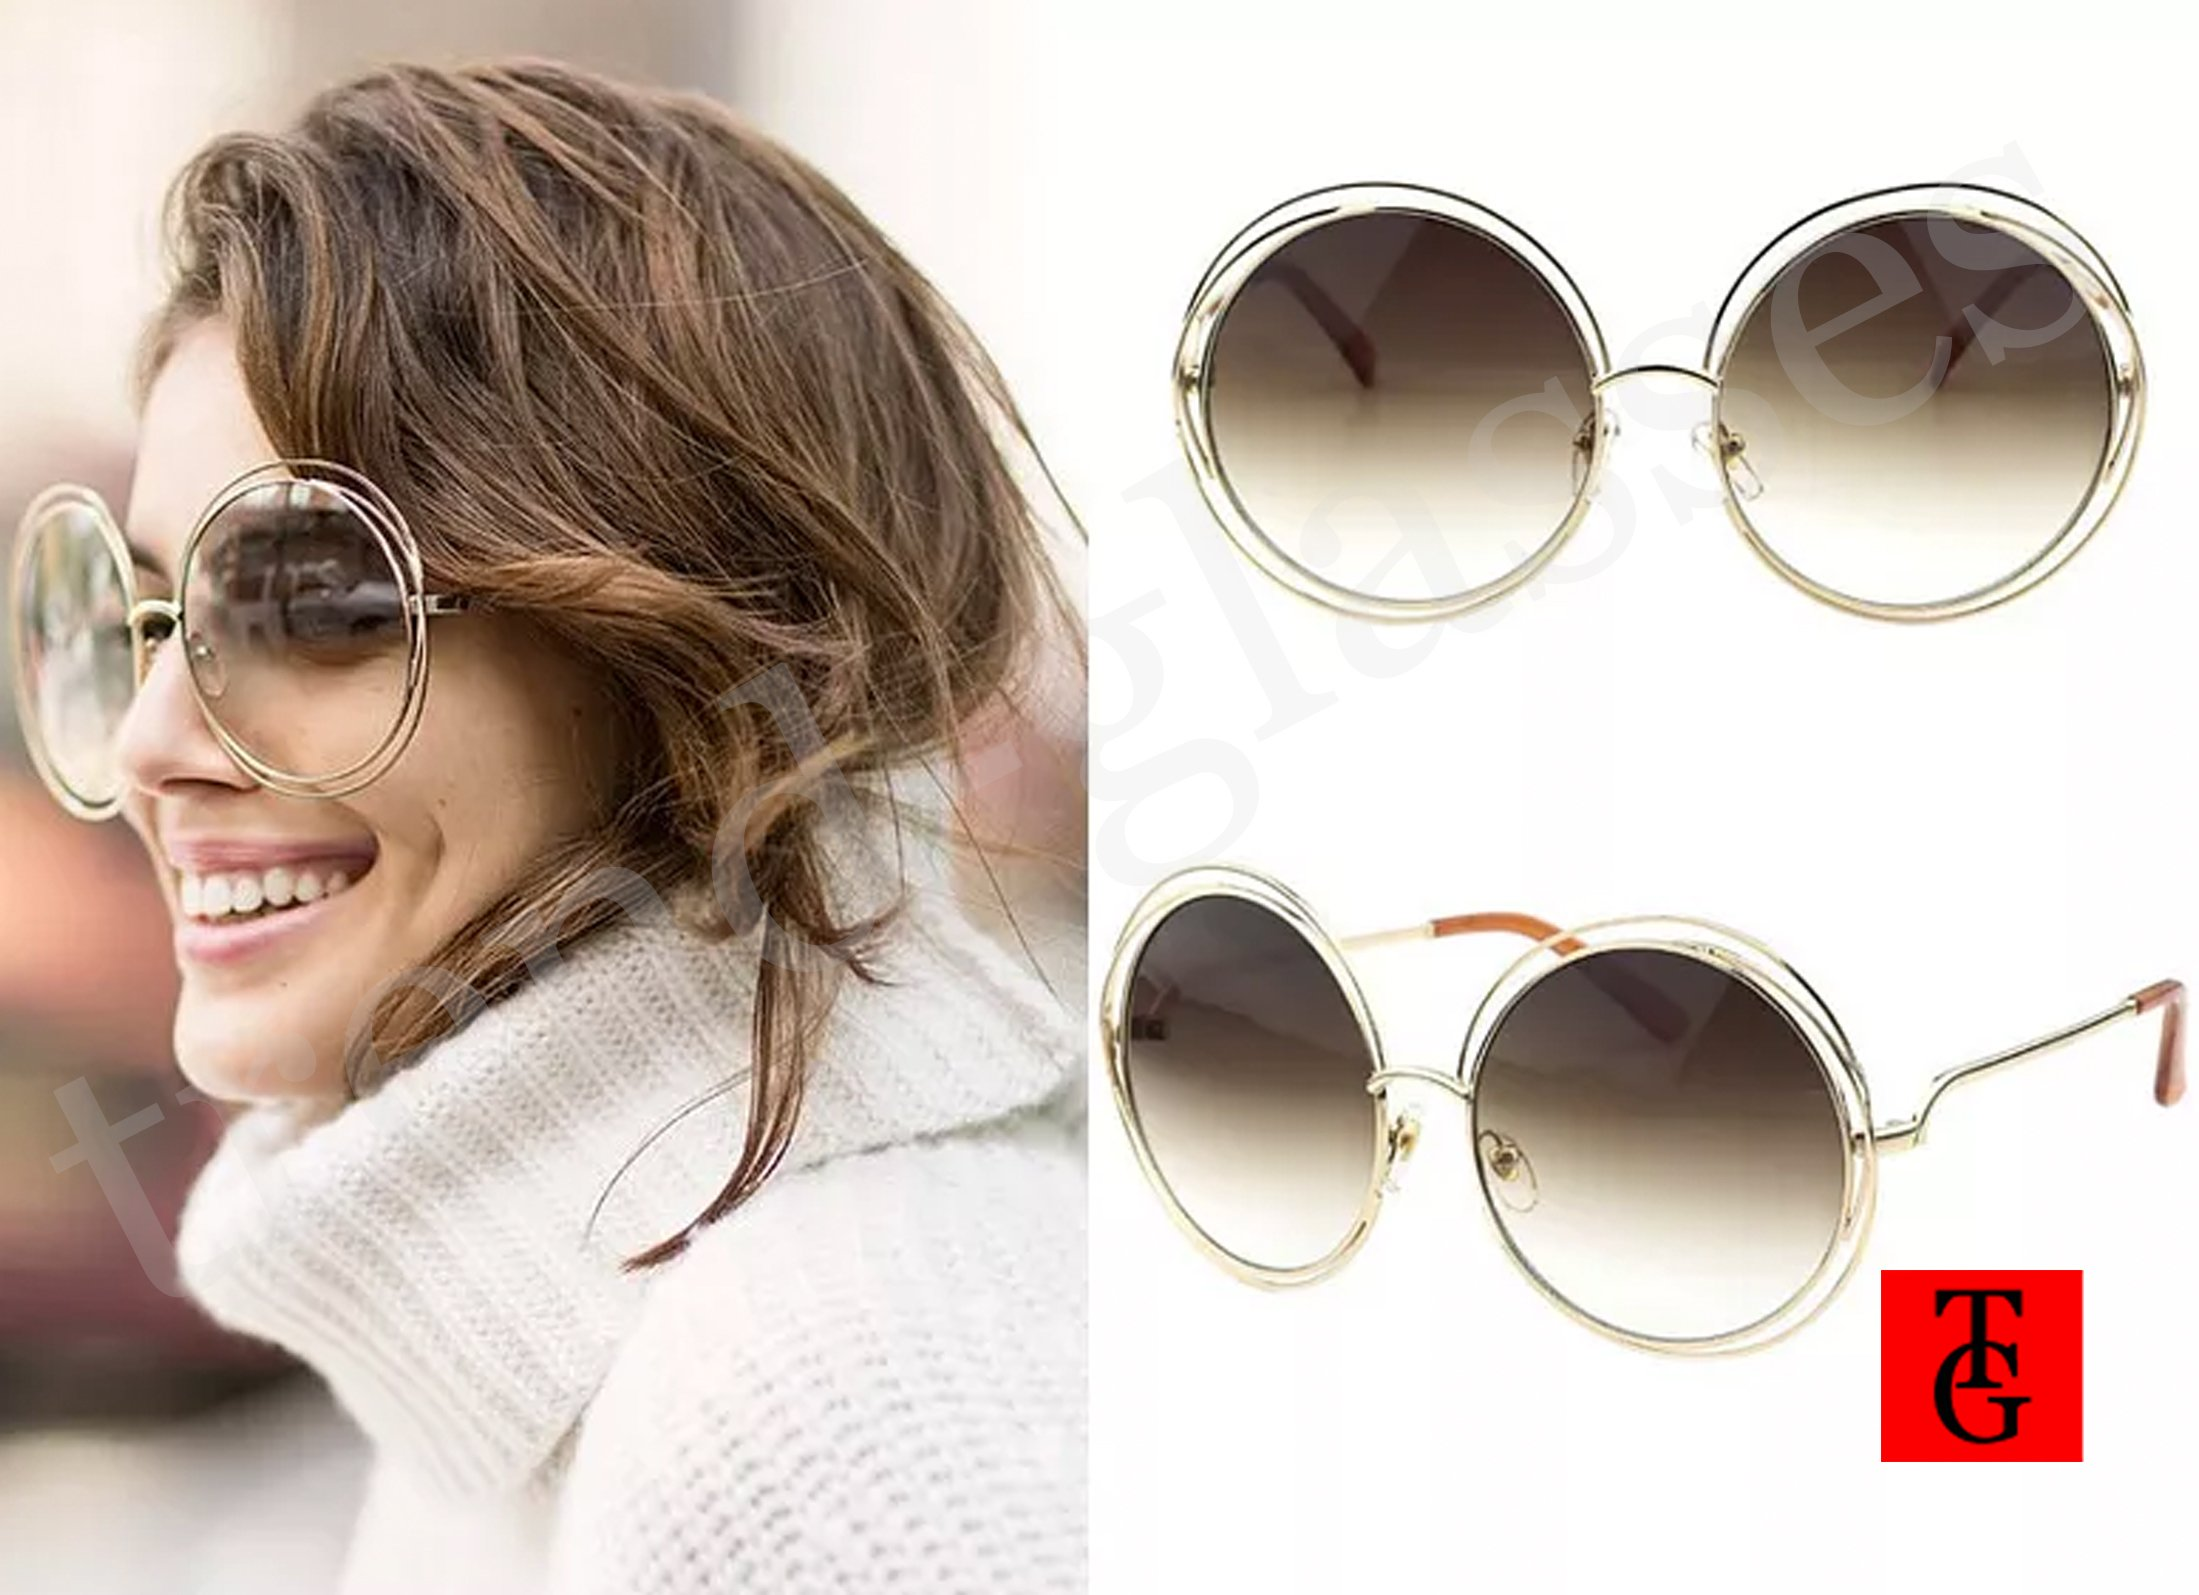 http://trend-glasses.ru/images/upload/ppppft5МЕР.jpg